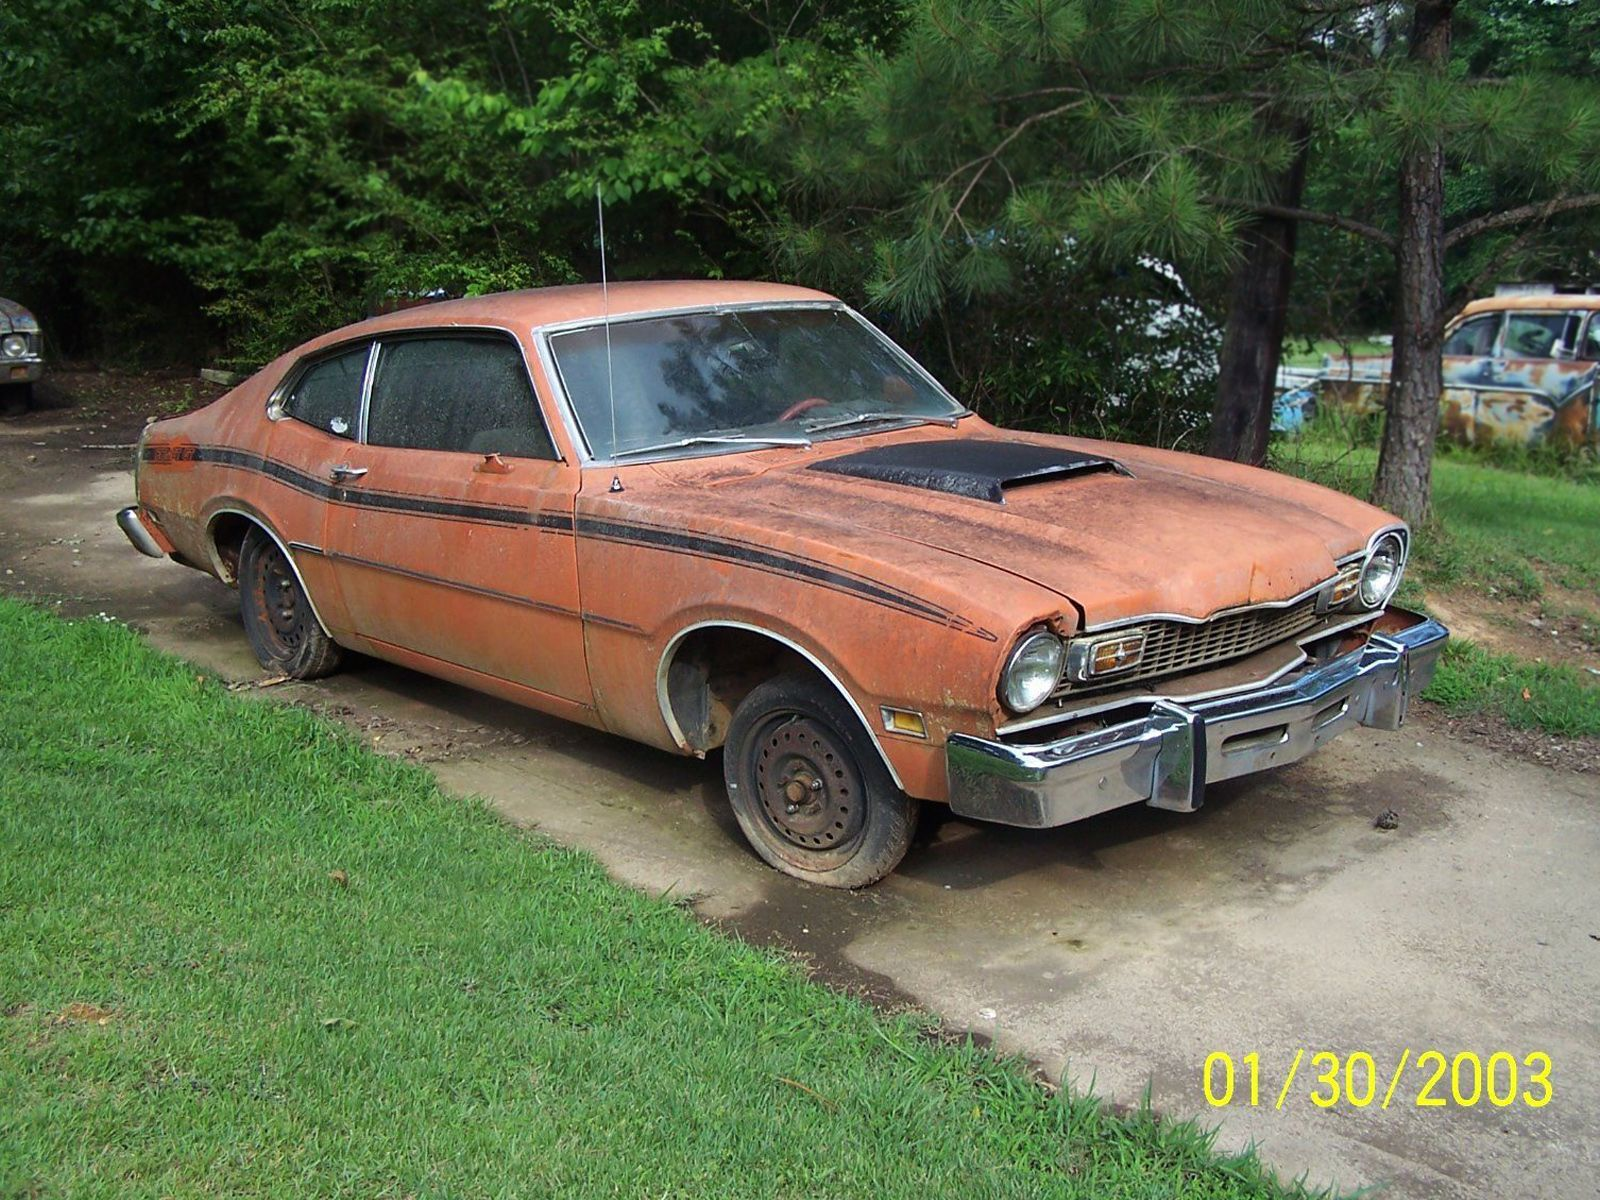 302 V8 Manual Transmission 1974 Mercury Comet Gt Comet Barn